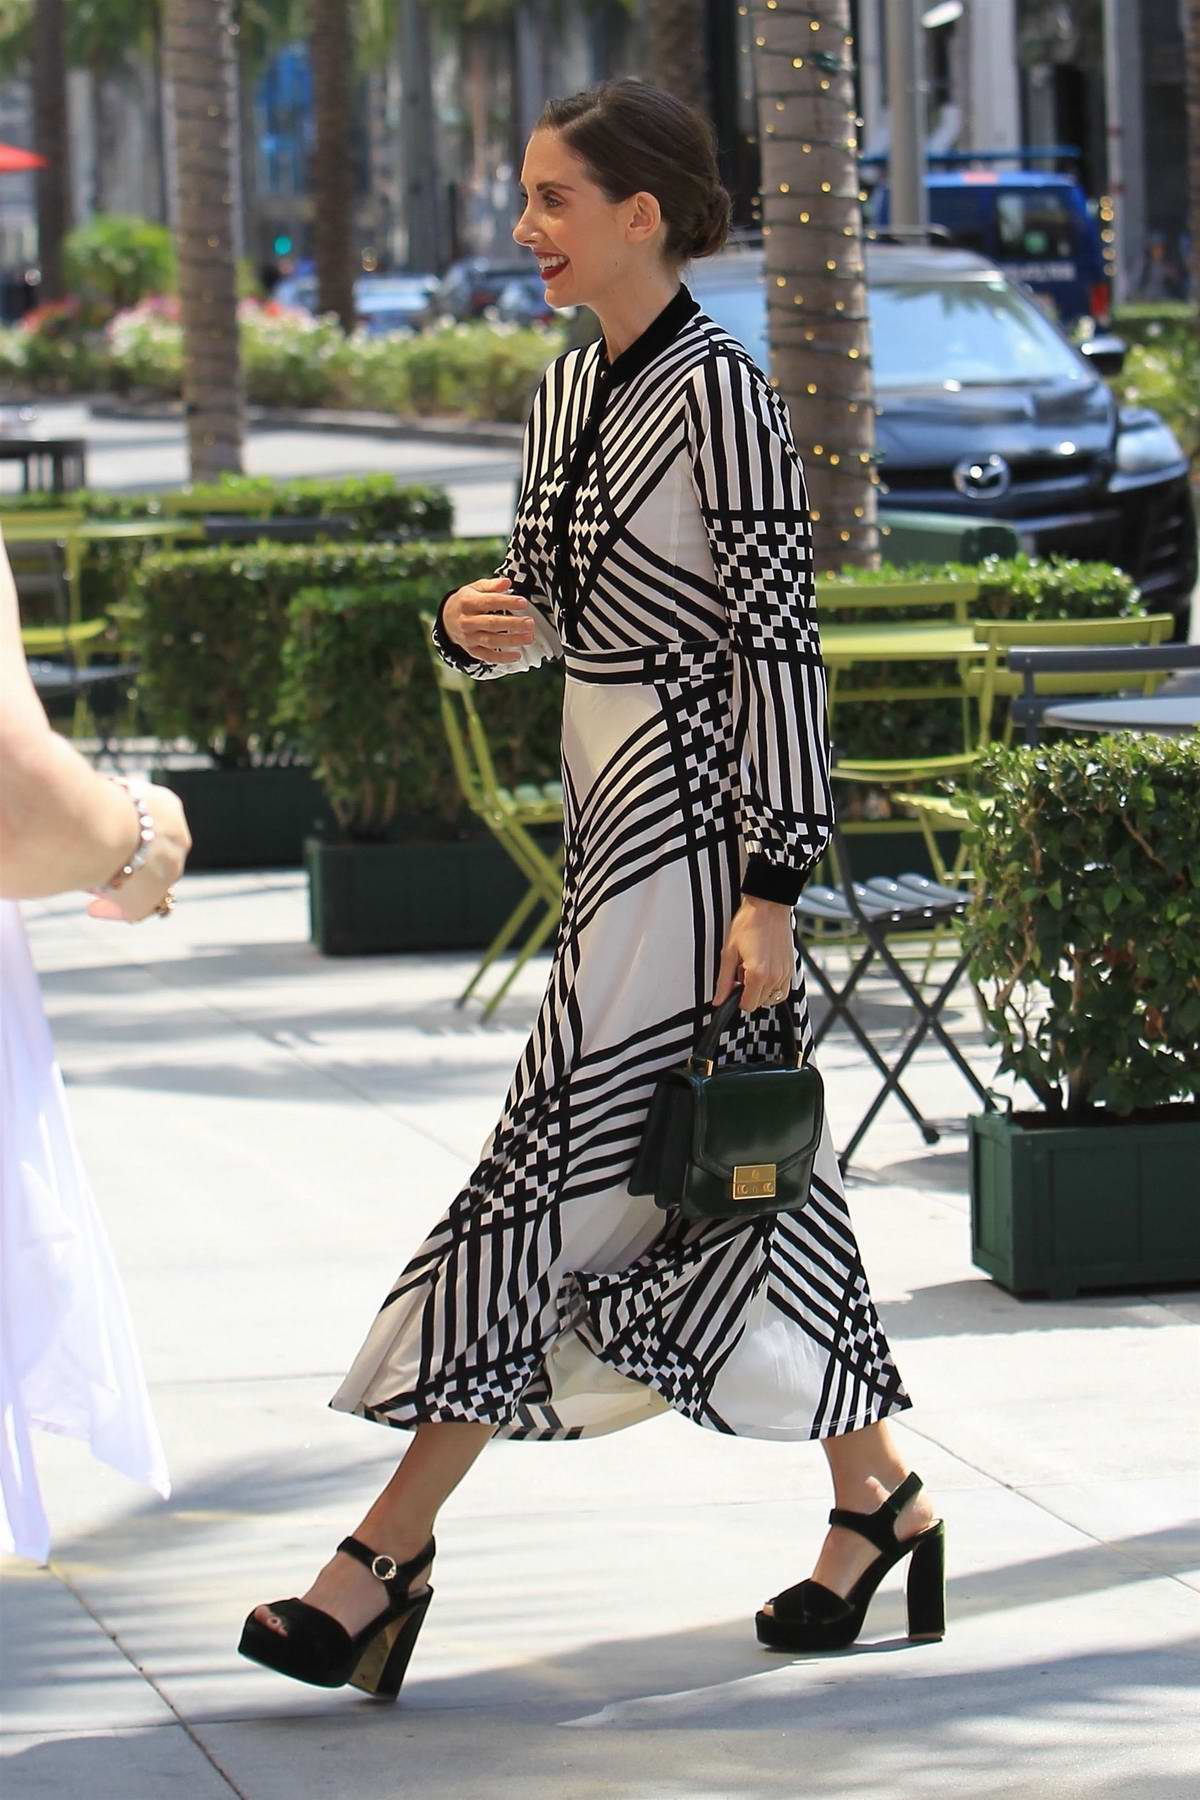 Alison Brie starts off her weekend with a little shopping in Beverly Hills, Los Angeles